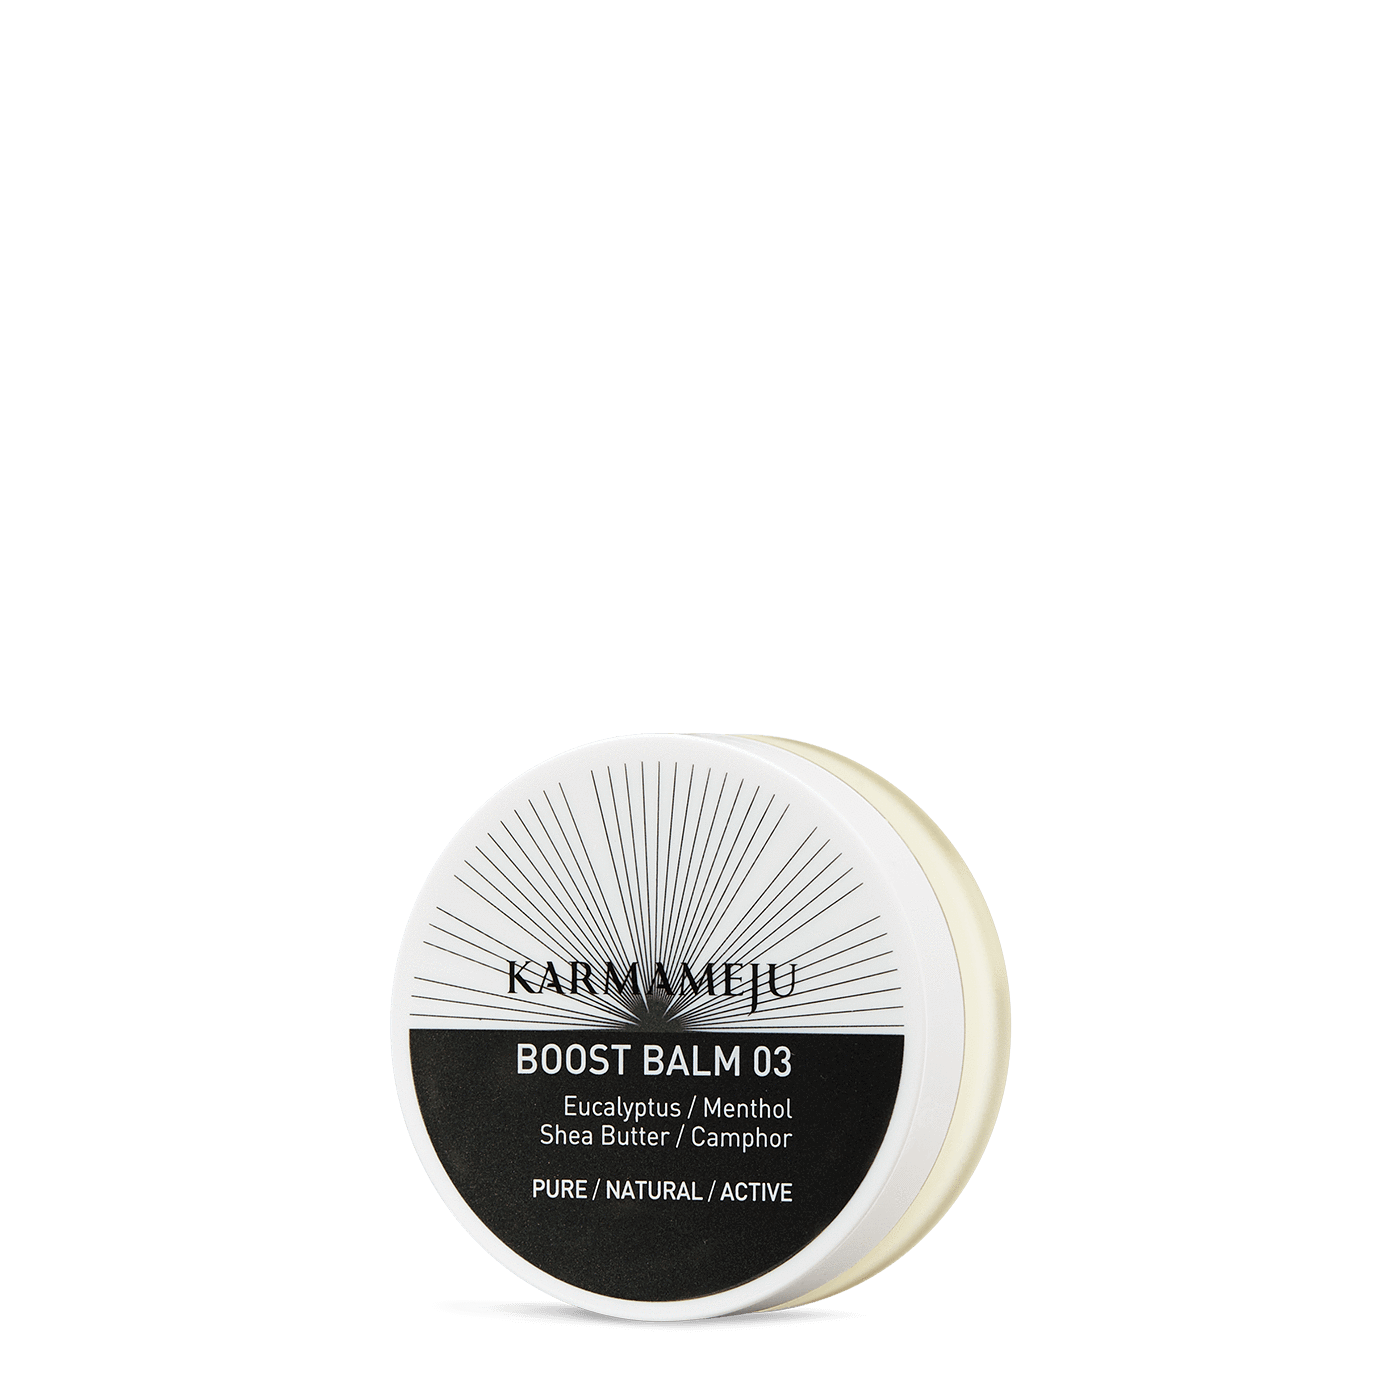 Karmameju BOOST / BALM 03 - Travel size